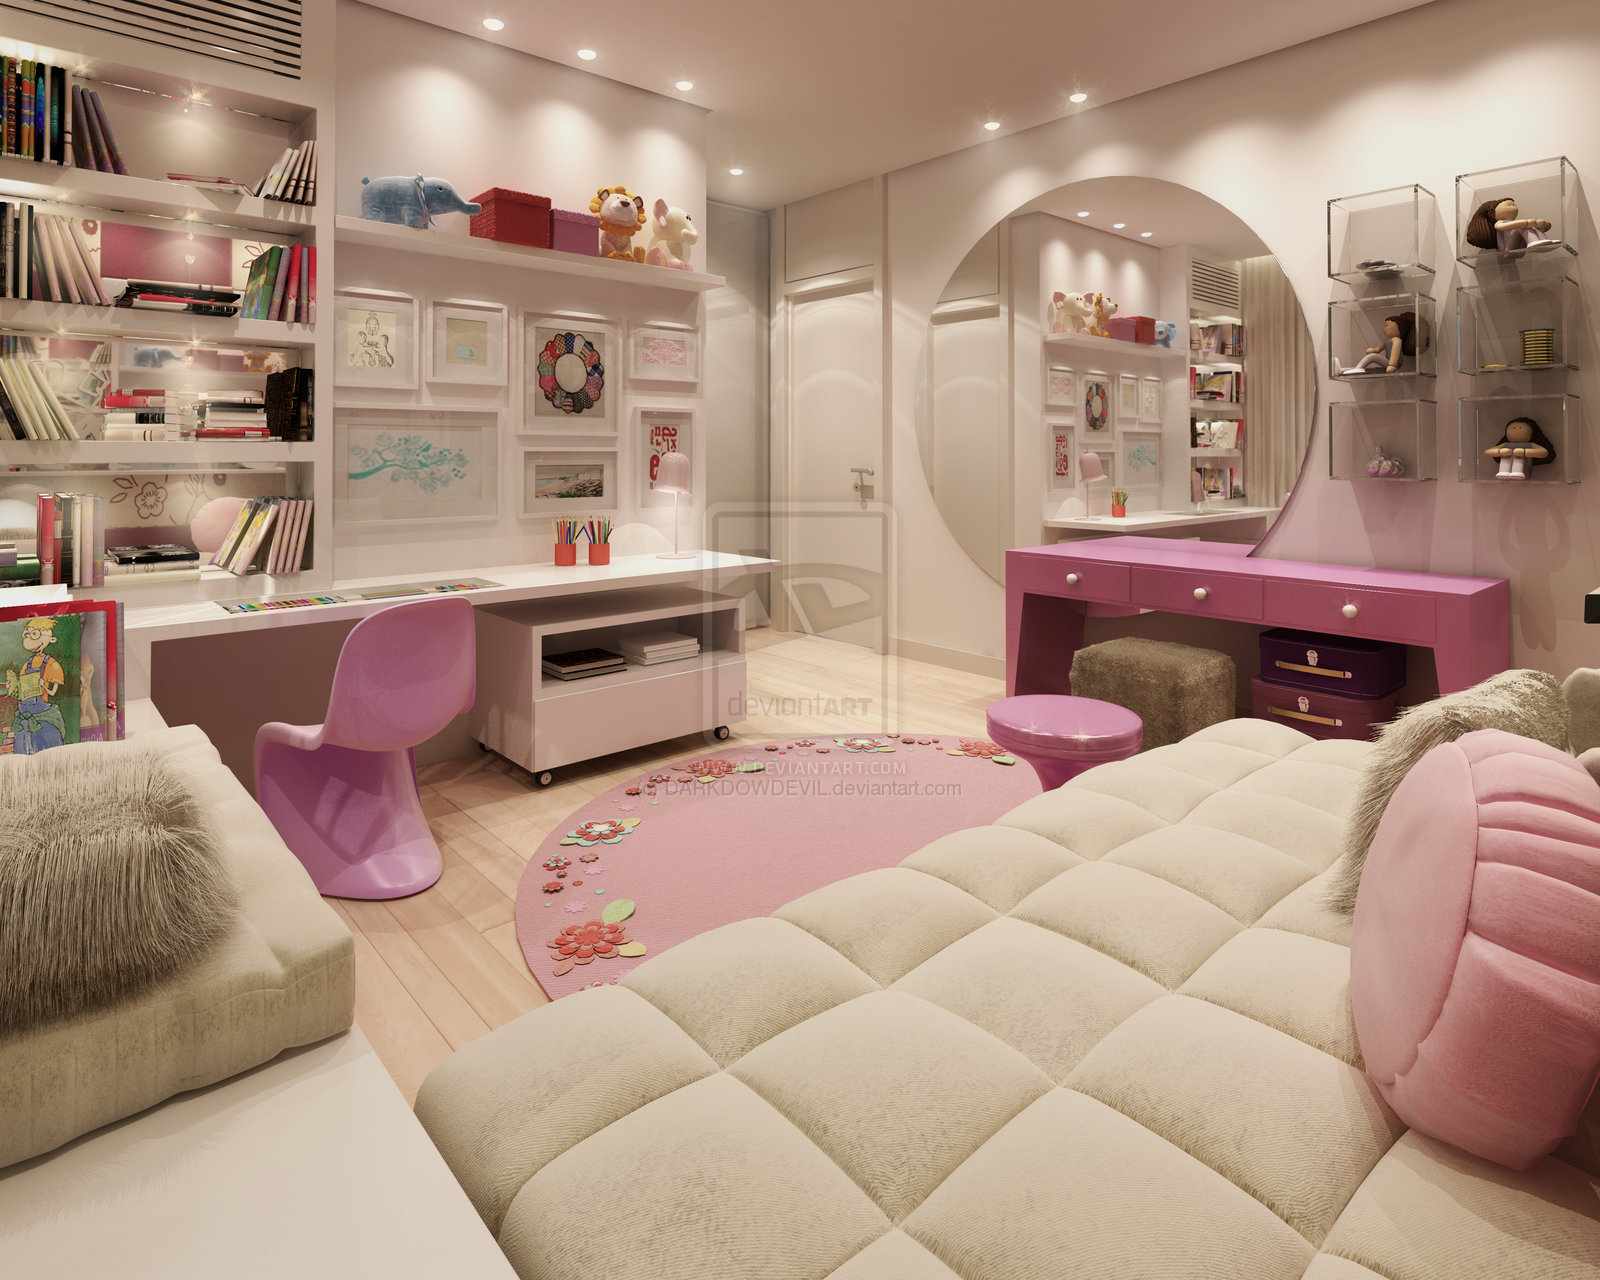 Teenage room designs Teenage girls bedrooms designs